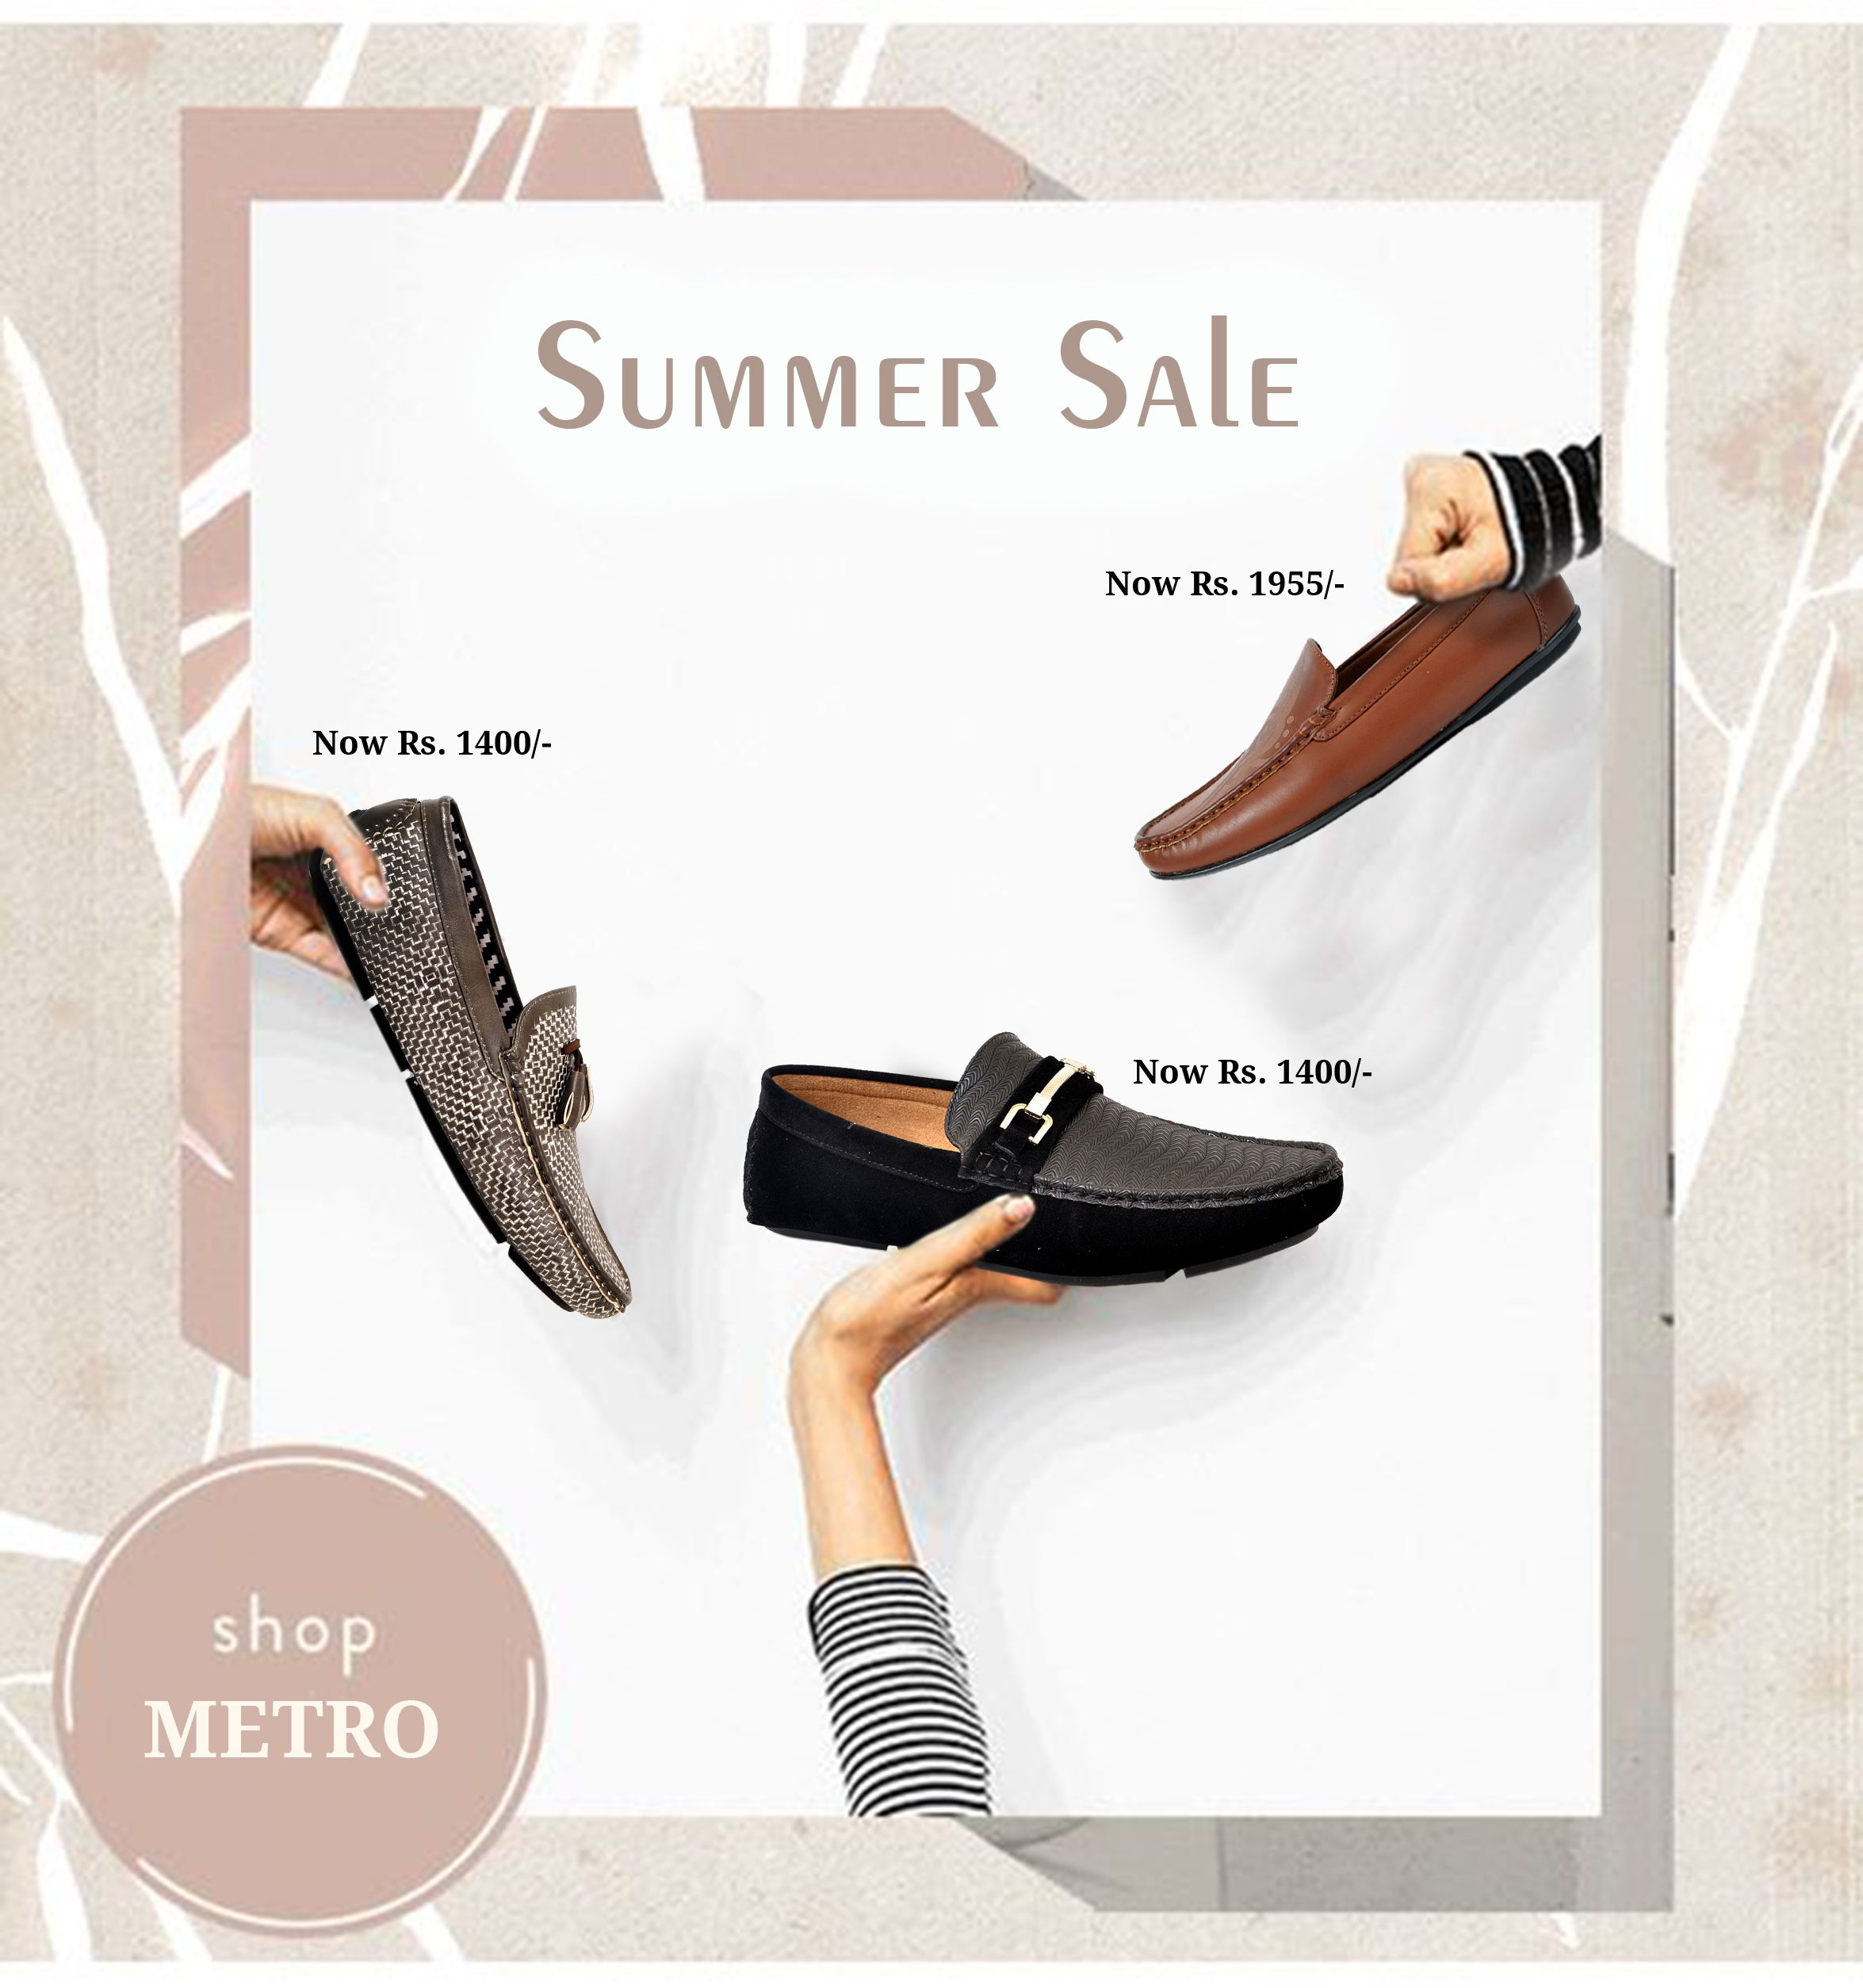 Summer #Sale #ShopNow #GentsCollection